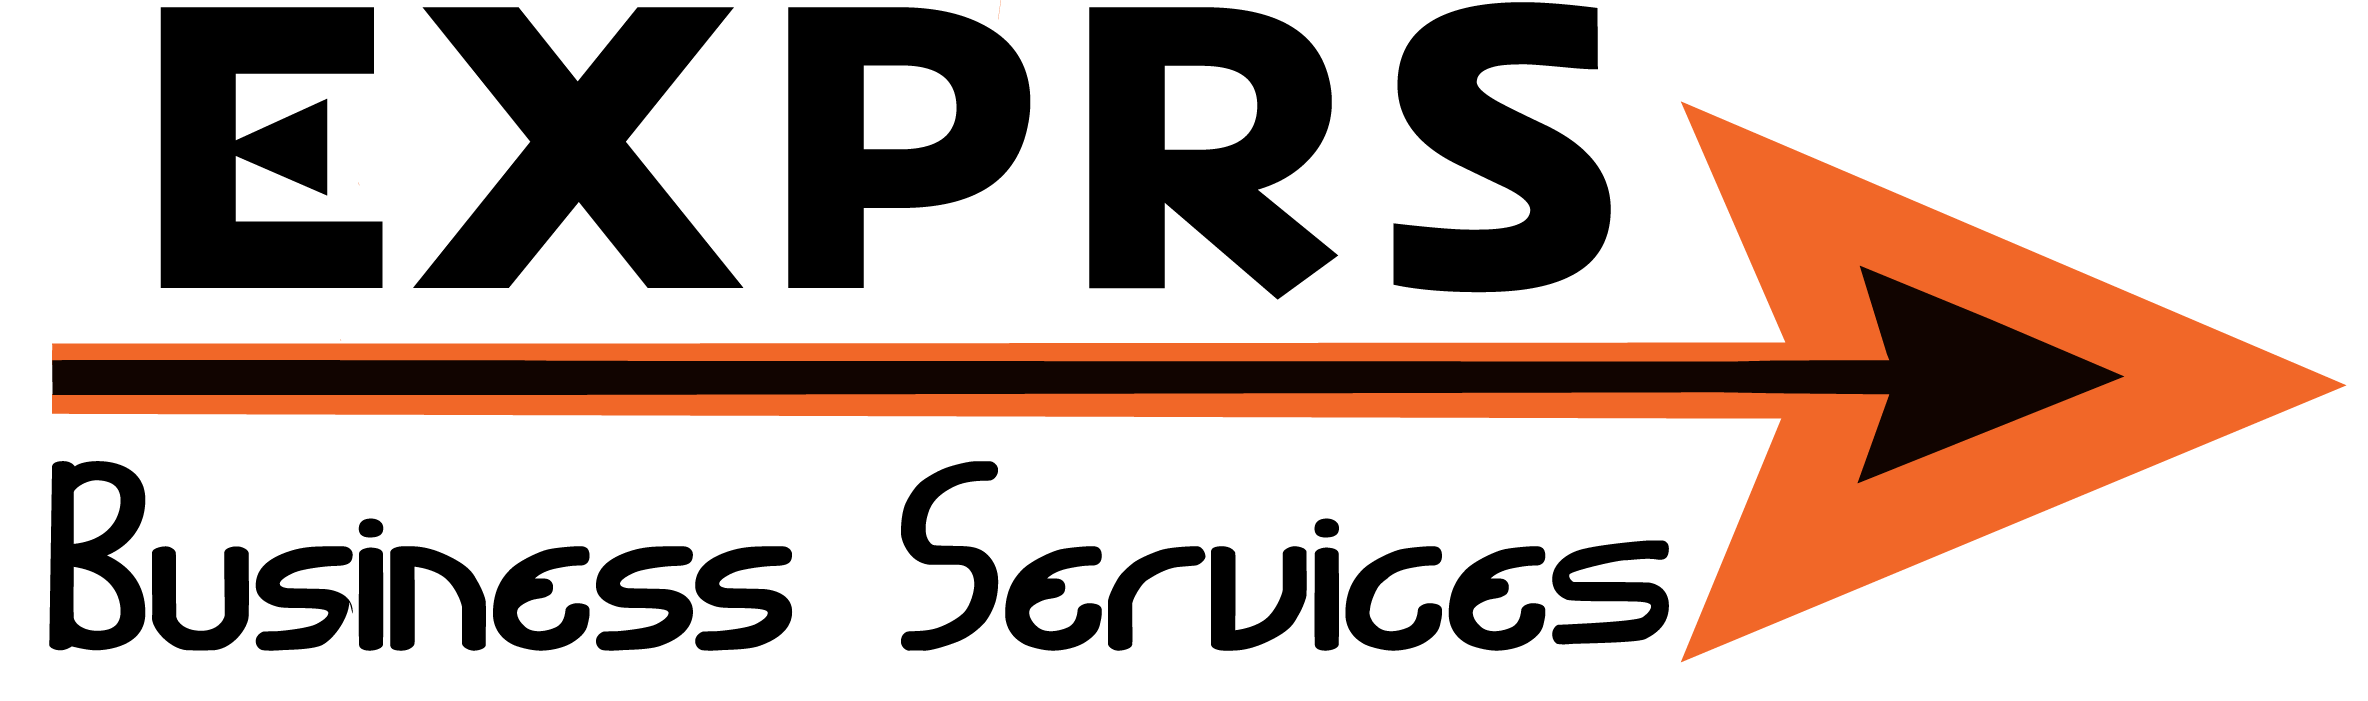 eXPRS Business Services Logo